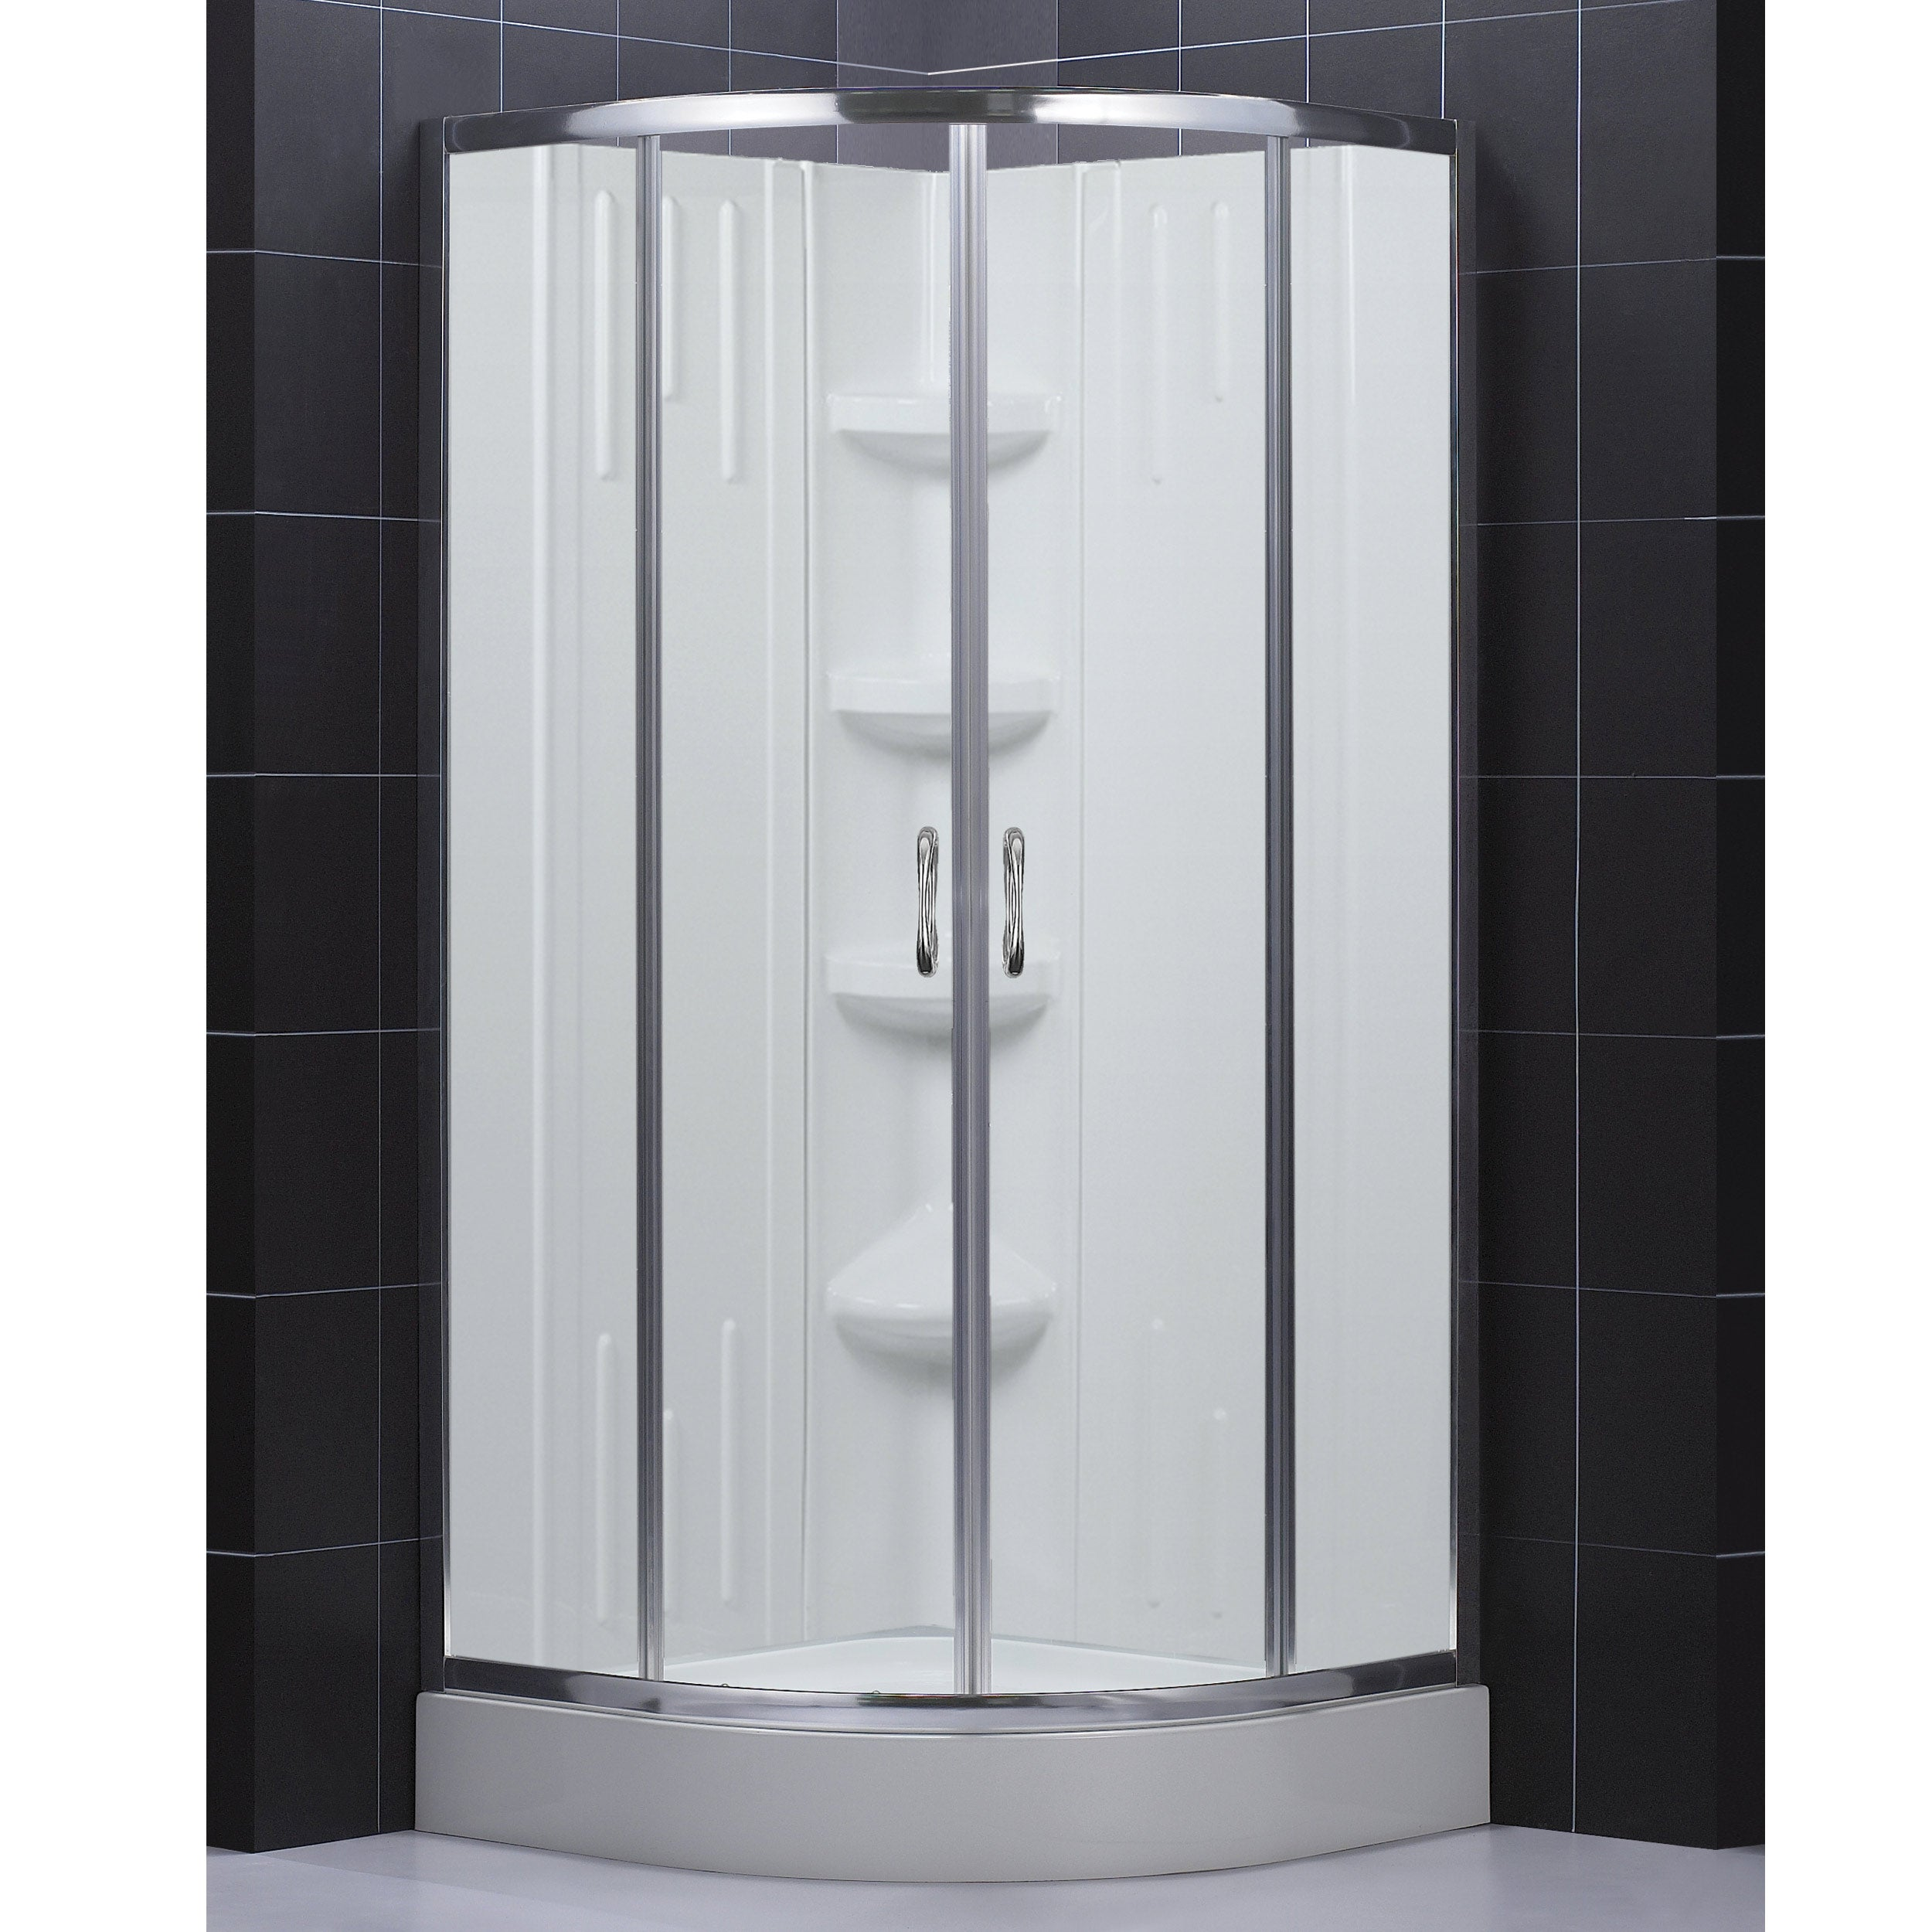 Shop DreamLine 32x32-inch Complete Shower Kit - Free Shipping Today ...